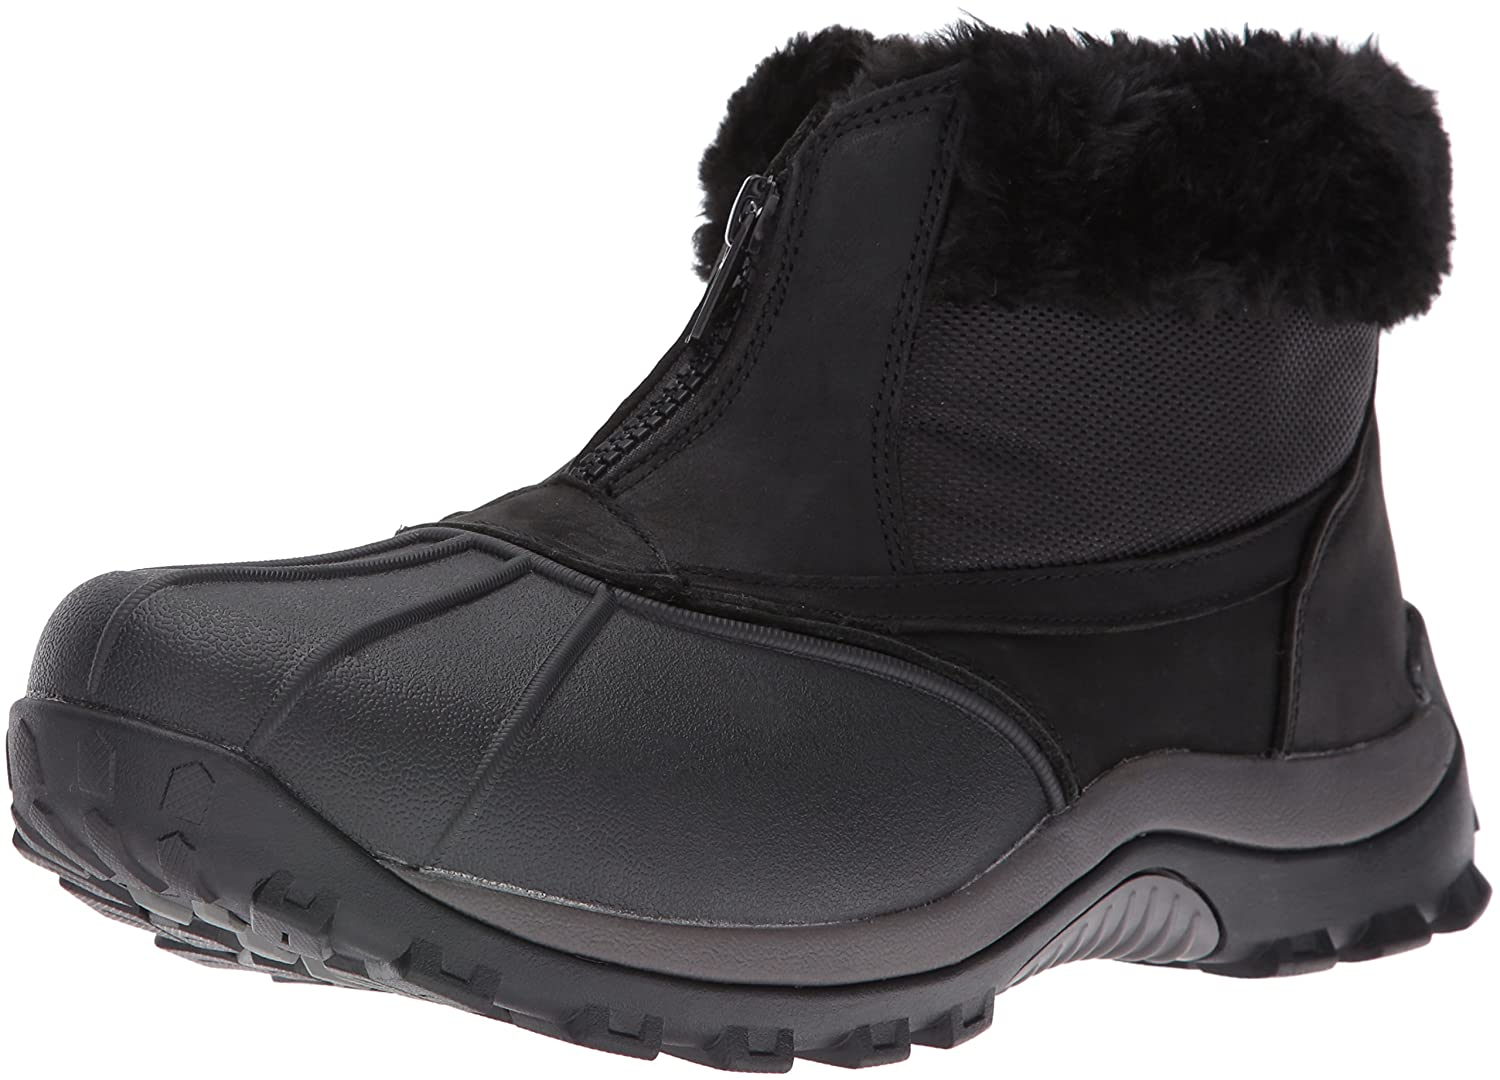 Propet Women's Blizzard Ankle Zip Ii Winter Boot B01AYP4SBC 6 2E US|Black/Nylon